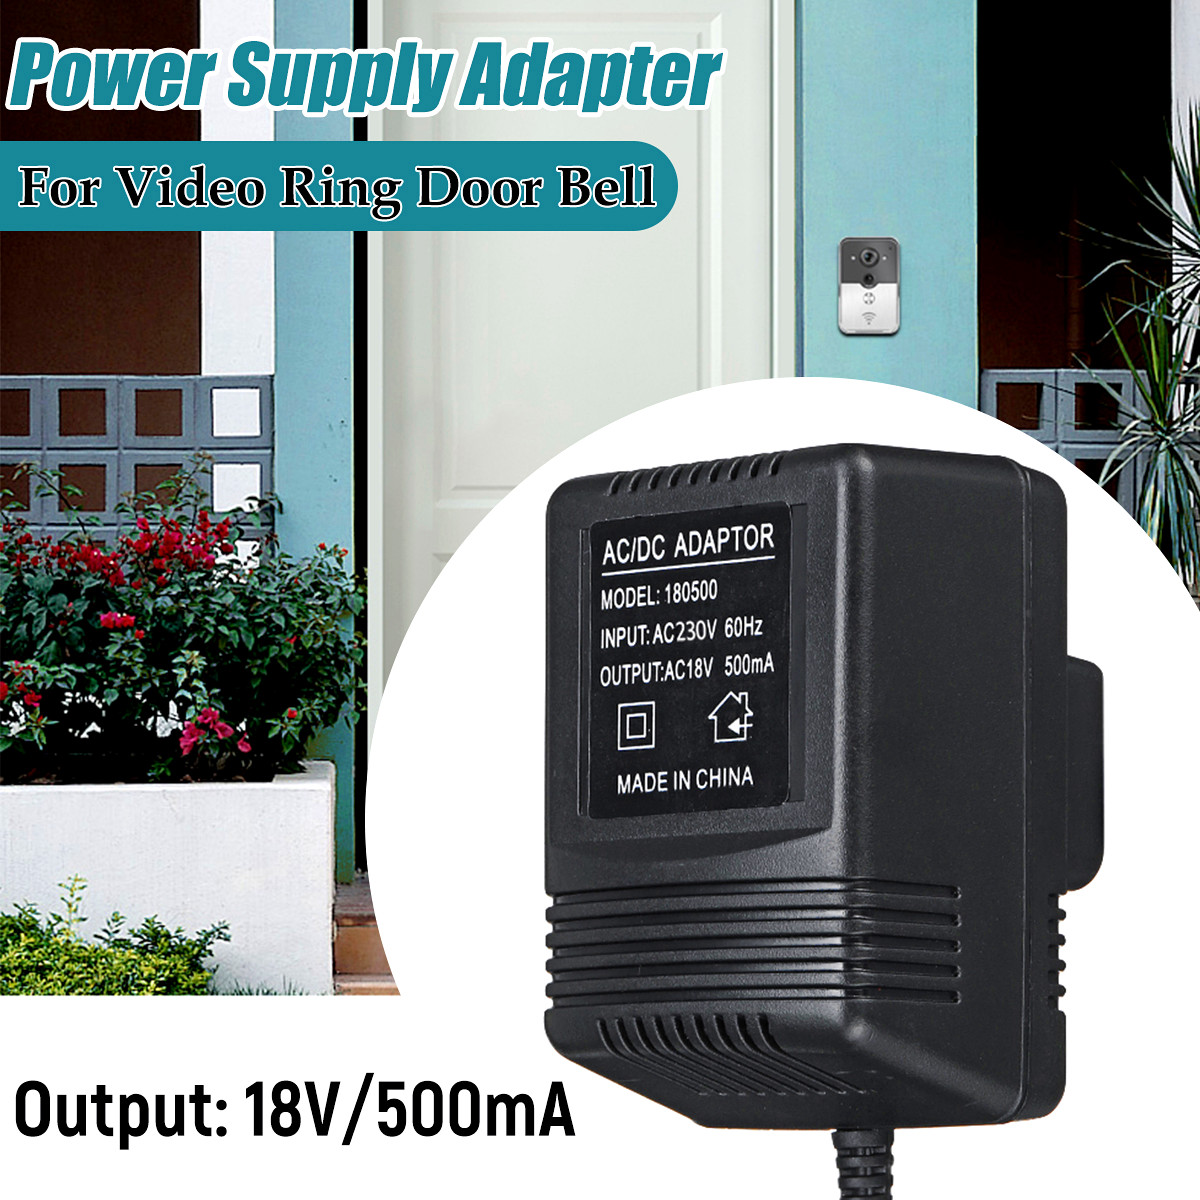 AC 18V 500mA 9W Output Power Supply Adapter Transformer Easy Installation UK for Video Ring Doorbell ac 18v 500ma 9w output uk power supply adapter transformer easy installation for video ring doorbell